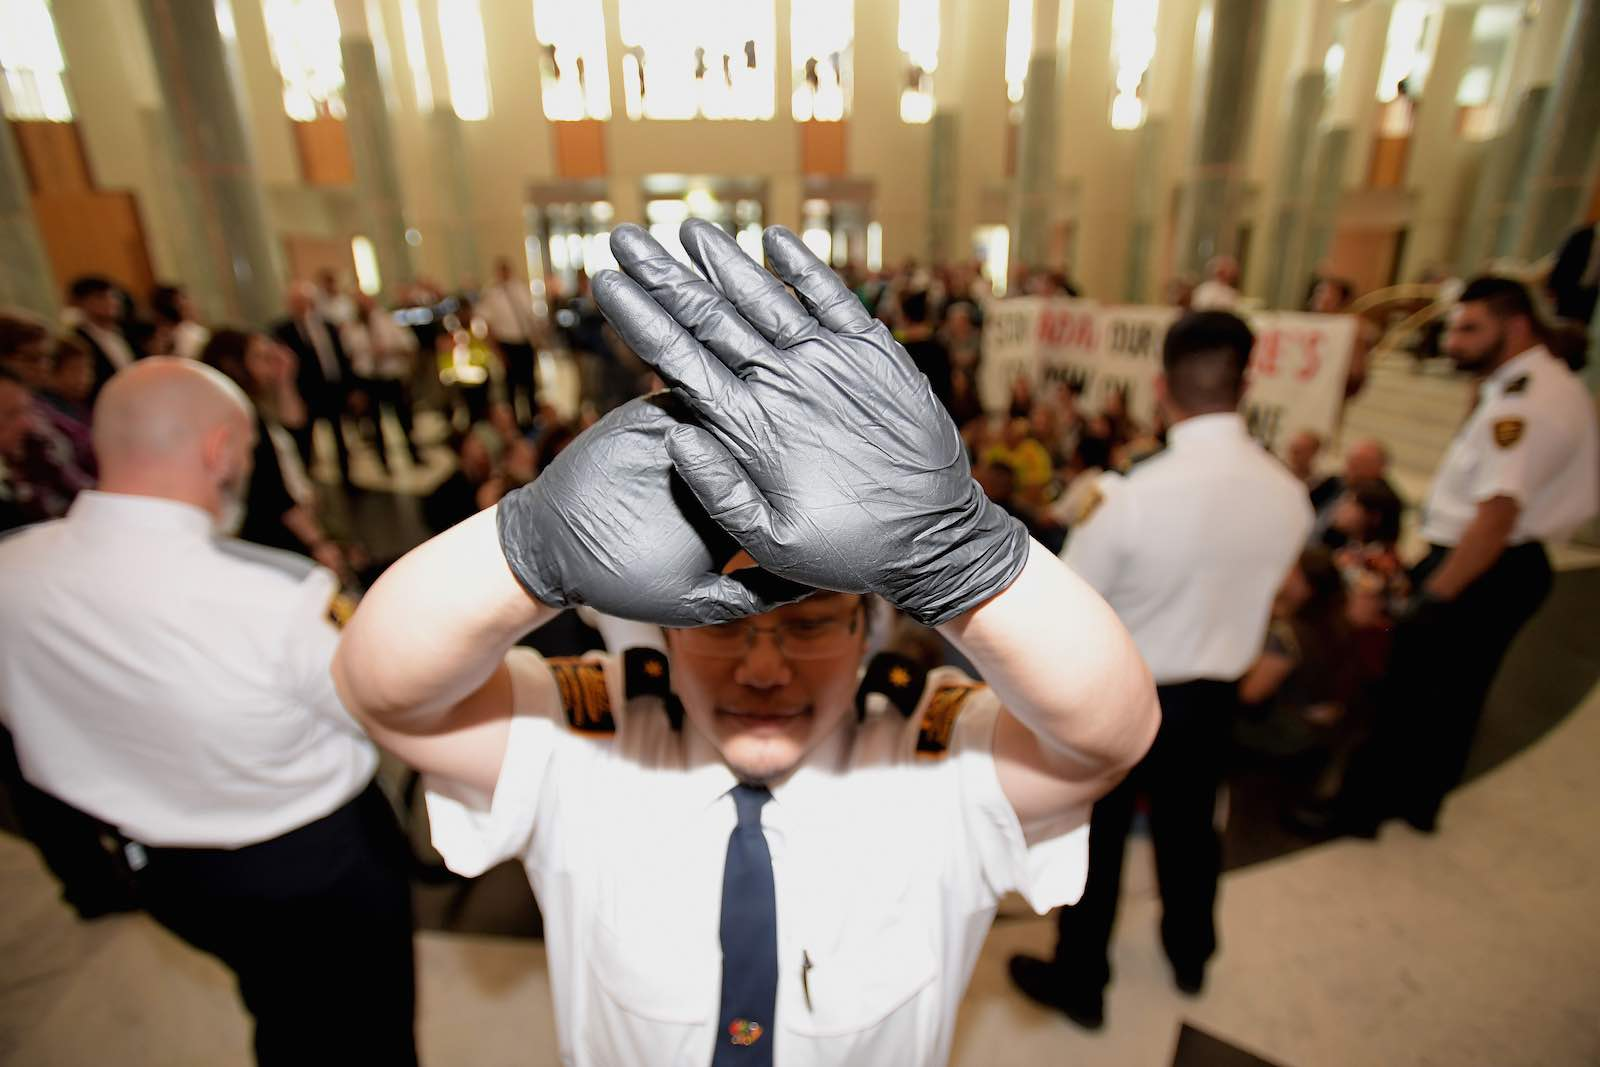 A security guard blocks photographers during a protest as parliament passes data-encryption legislation, Canberra, December 2018 (Photo: Tracey Nearmy/Getty Images)